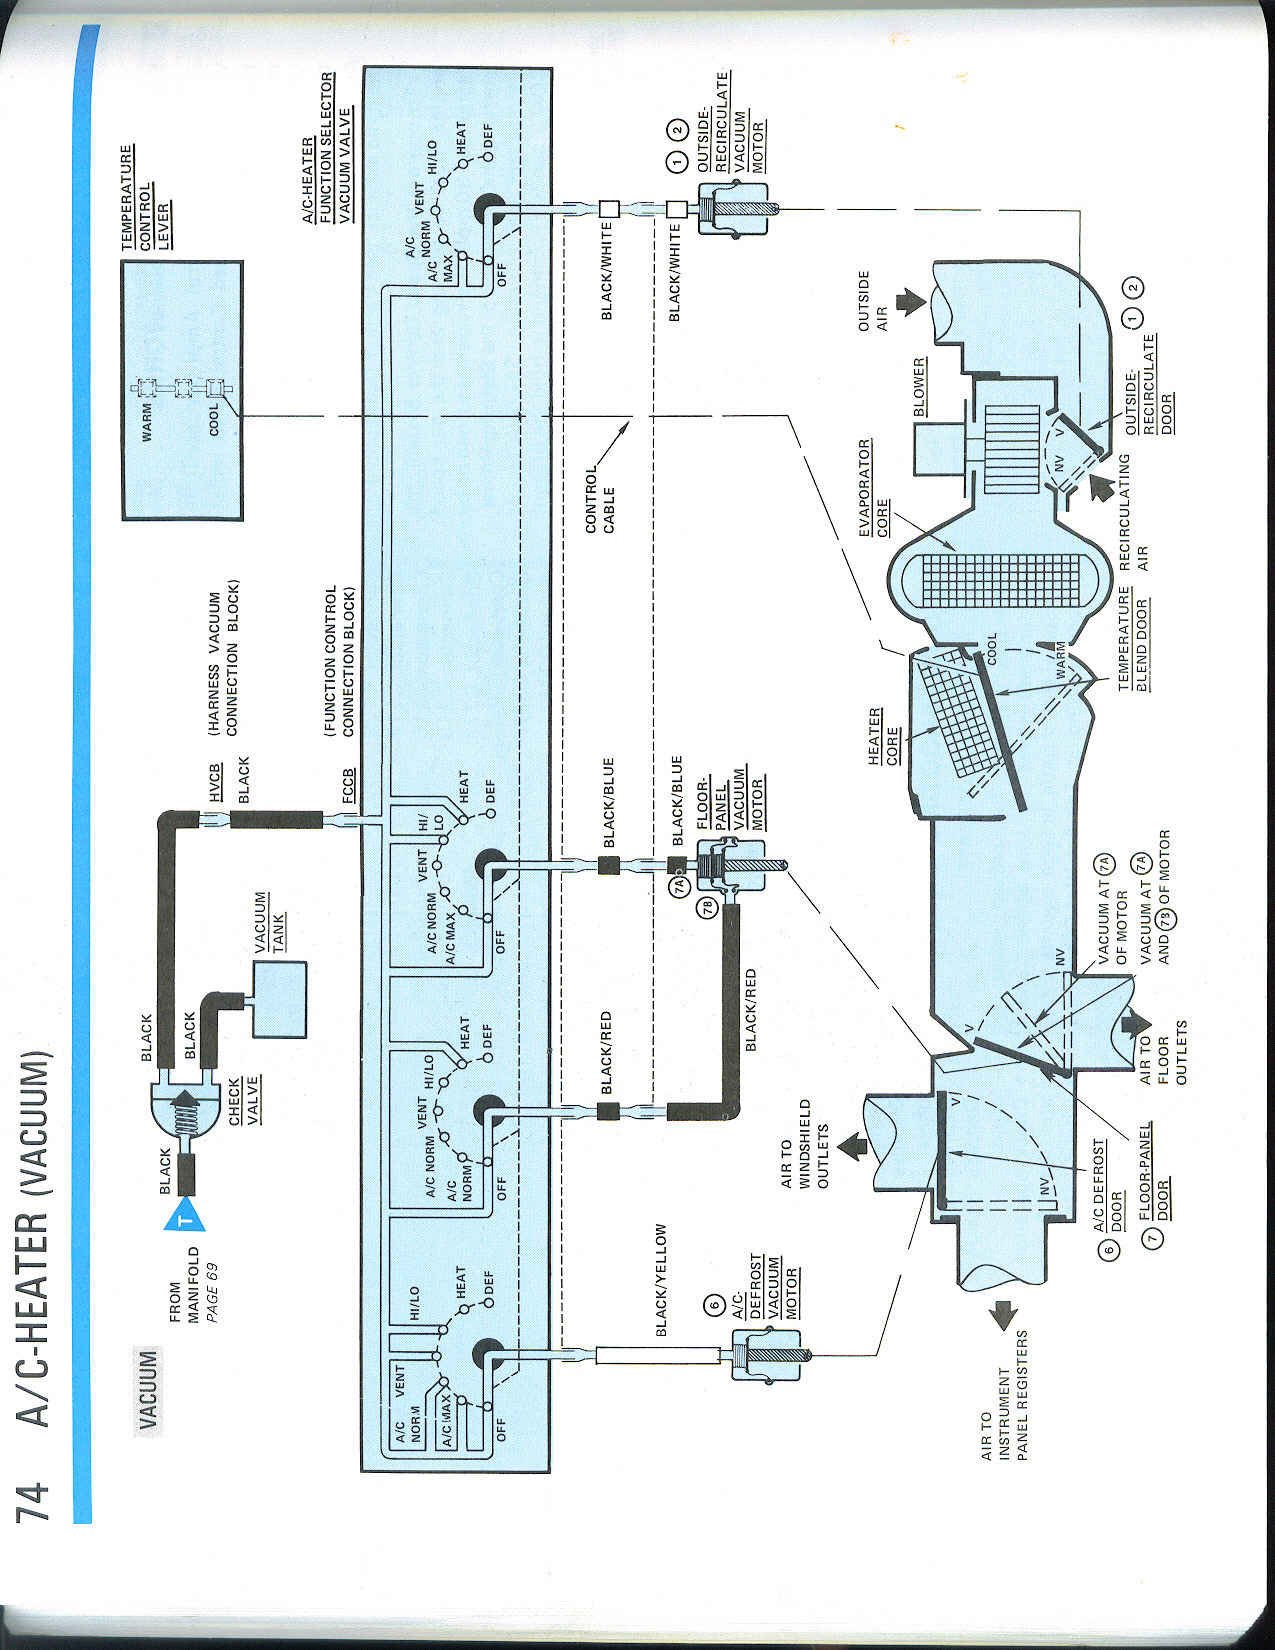 hight resolution of 1989 ford mustang with 23l turbo vac diagram ford mustang forum 2000 ford mustang engine diagram http wwwallfordmustangscom forums